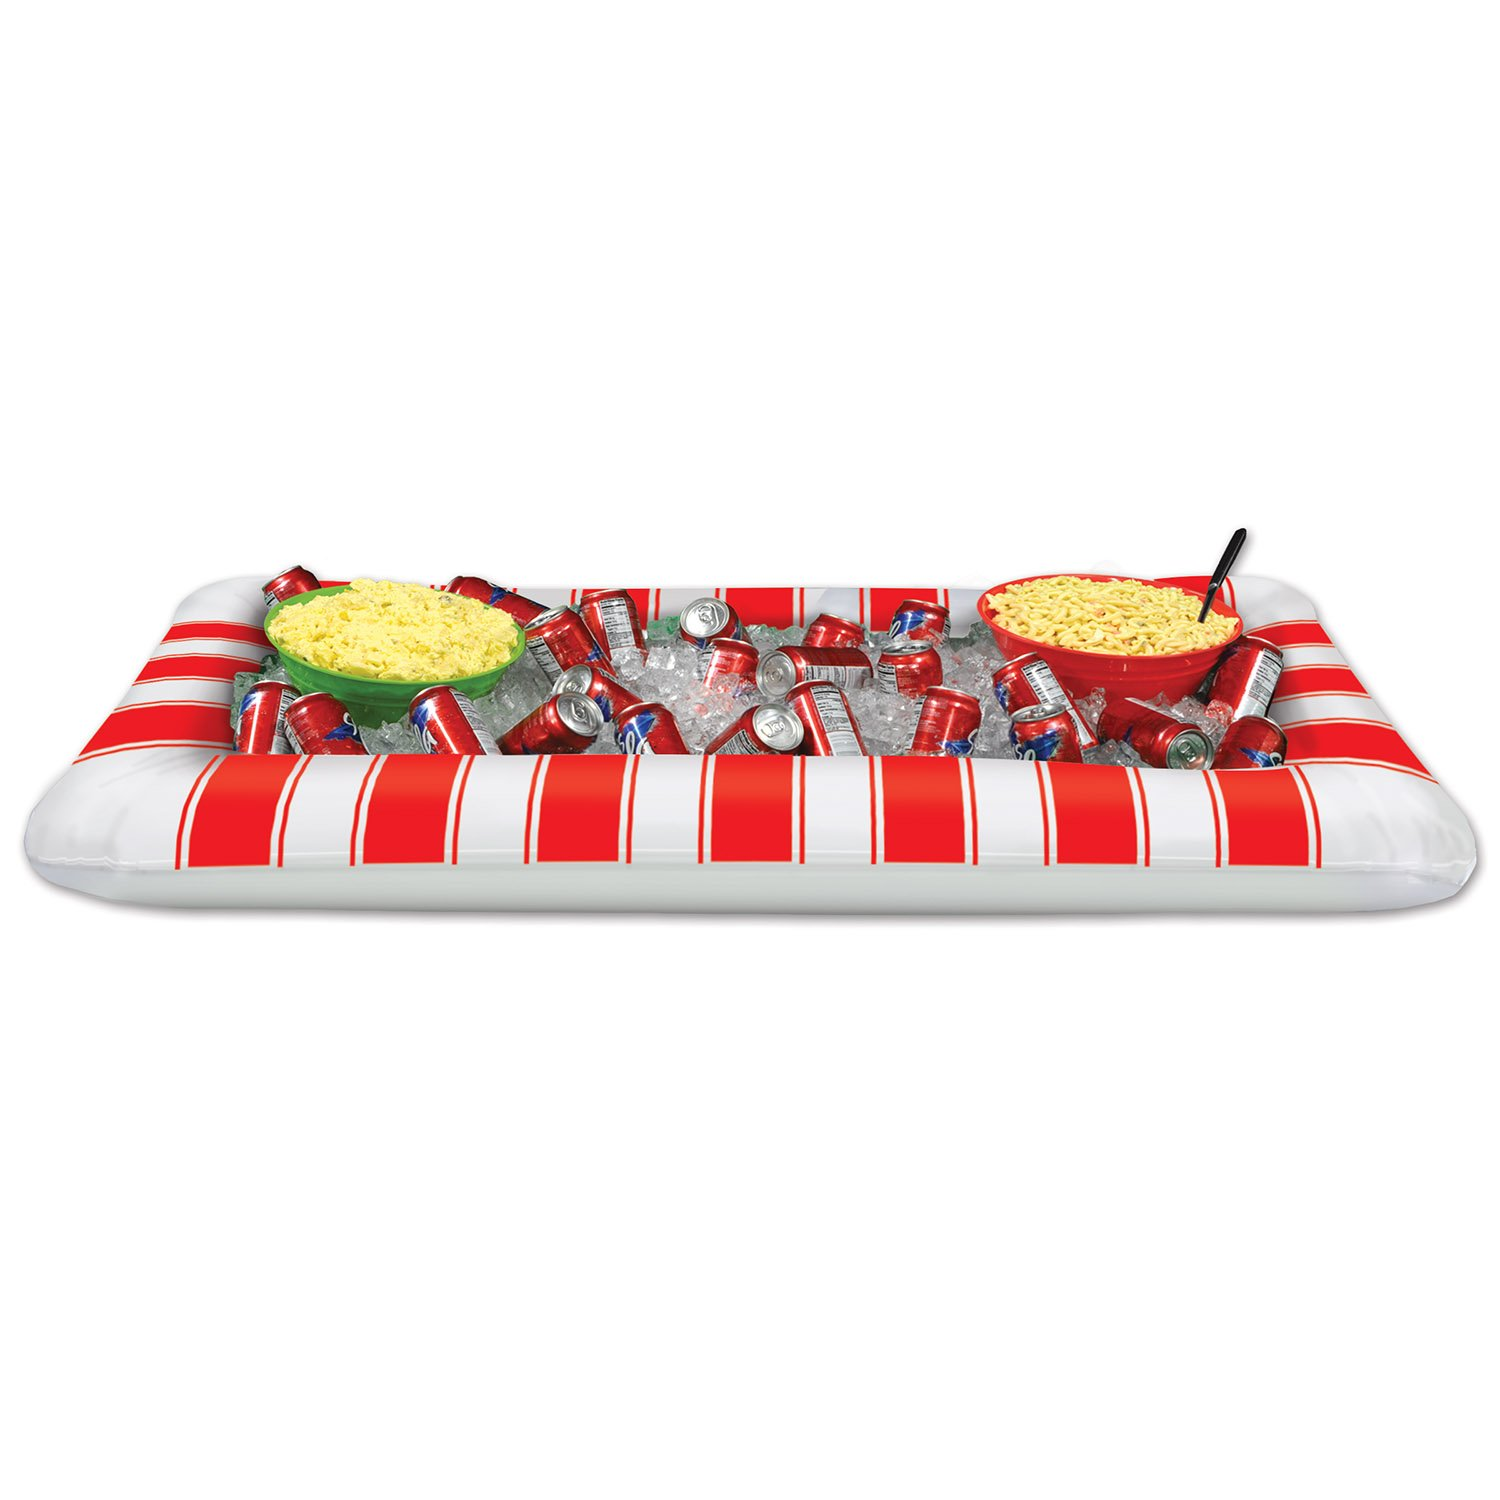 Beistle Inflatable Stripes Buffet Cooler, 28 by 5 3/4-Inch, Red/White